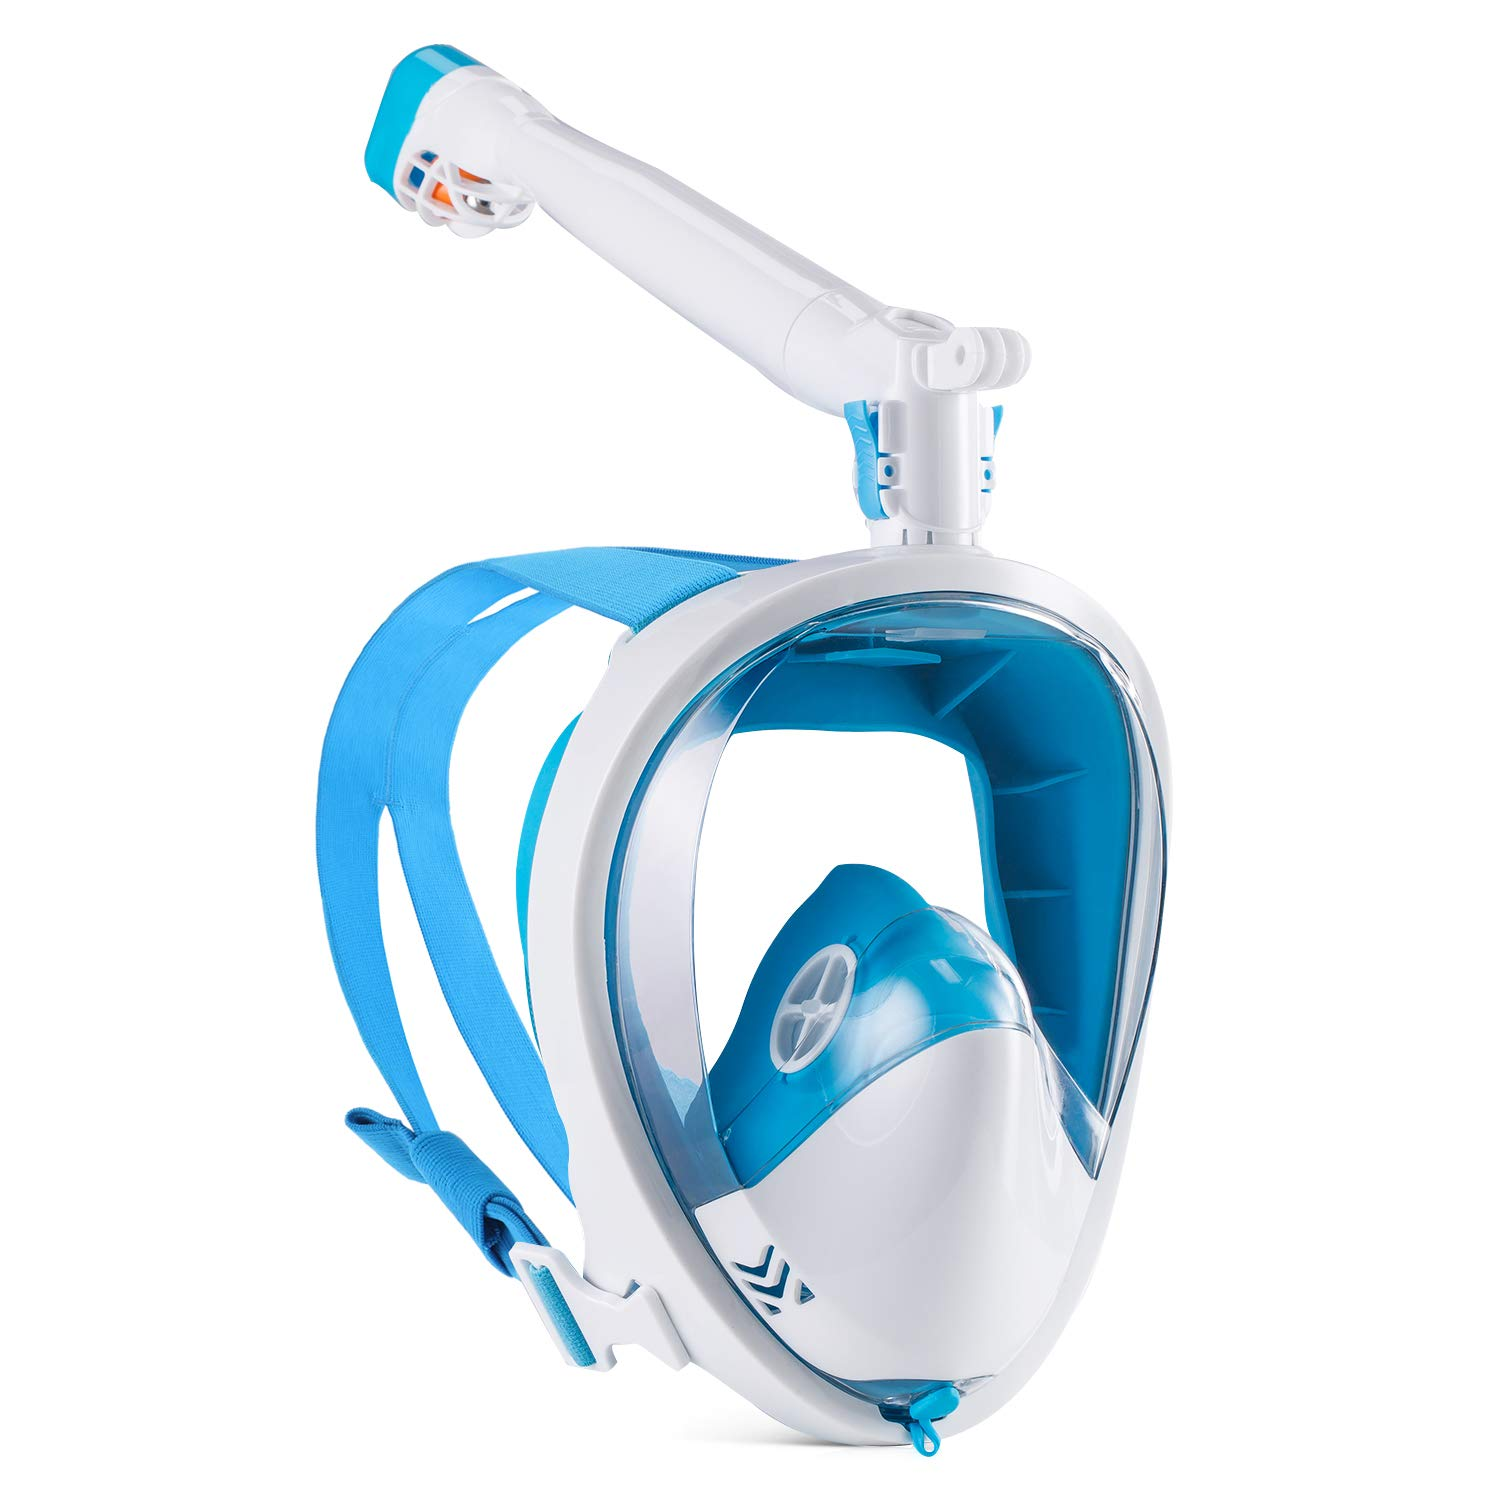 GroHoze Full Face GoPro Compatible Snorkel Mask with 180° Panoramic Viewing and Advanced Breathing System for Snorkeling and Diving - Blue & White, L/XL by GroHoze